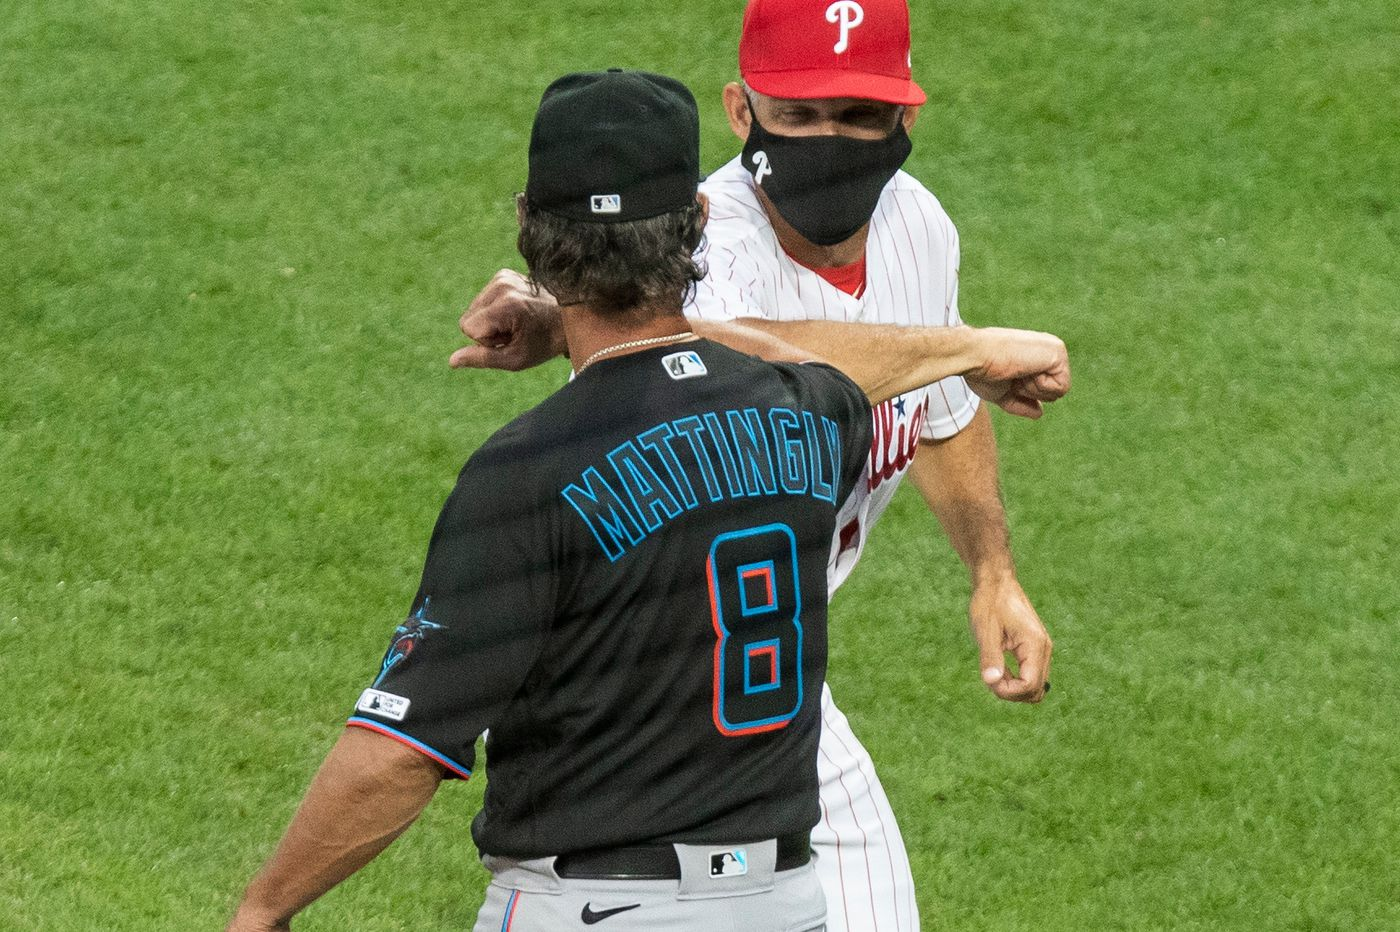 Playing catch-up with the Phillies after a whirlwind first week | Podcast